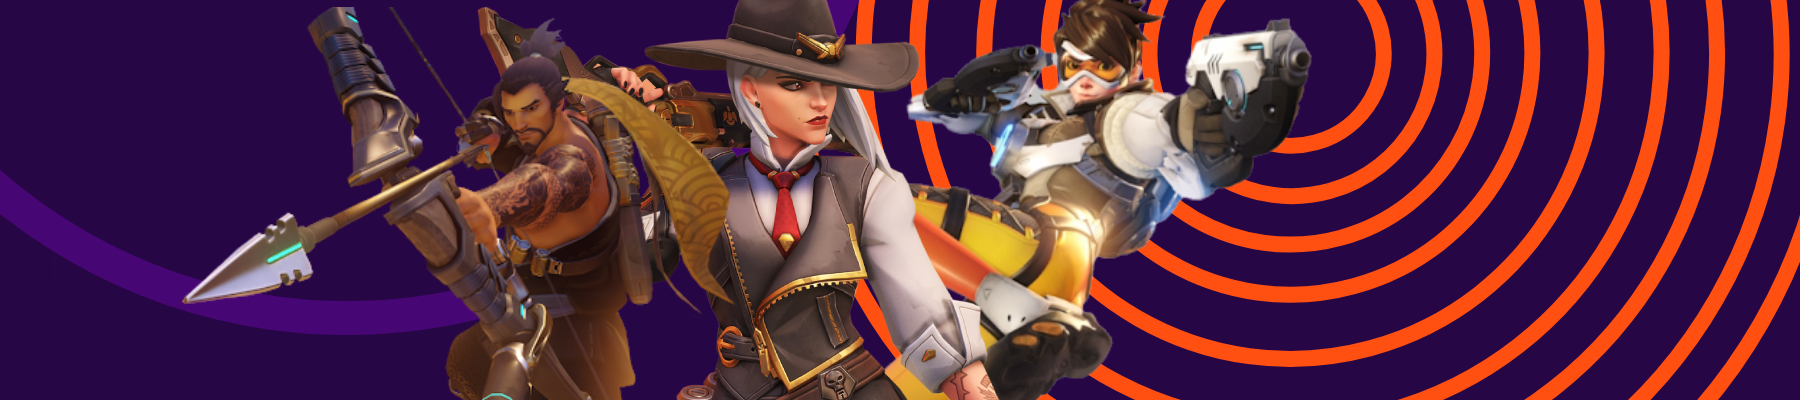 Png Overwatch Game